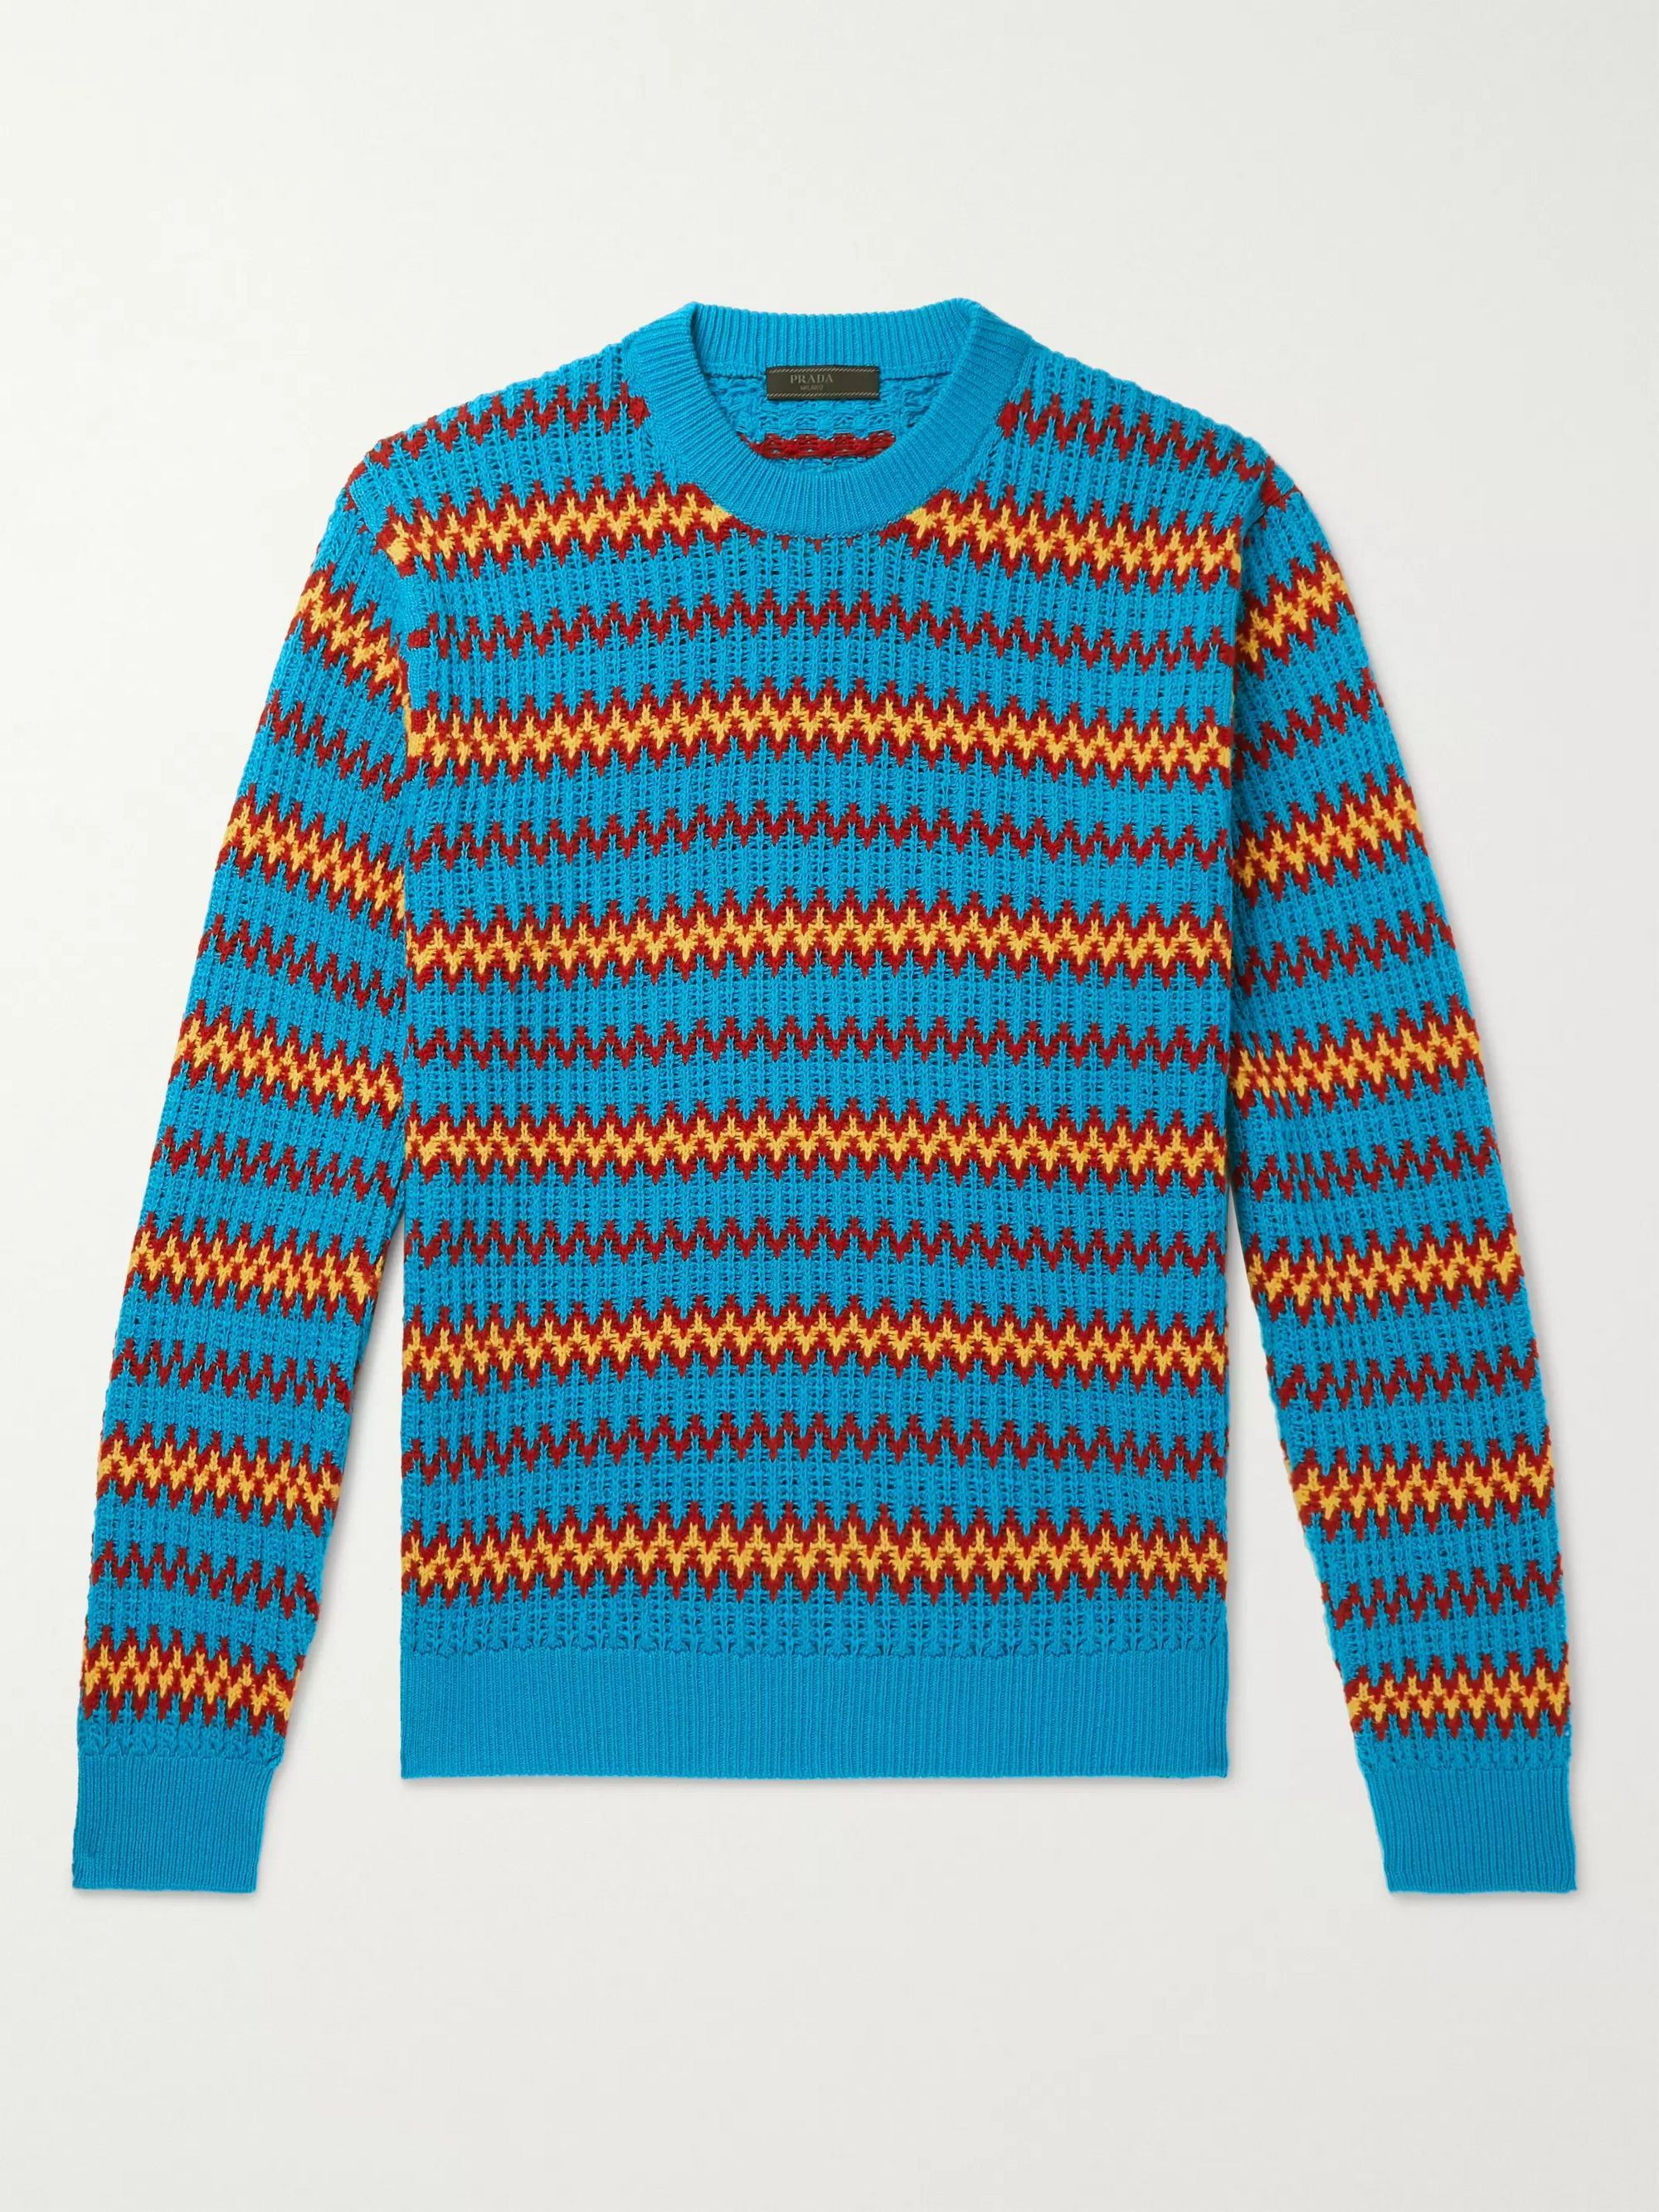 Prada Wool and Cashmere-Blend Jacquard Sweater